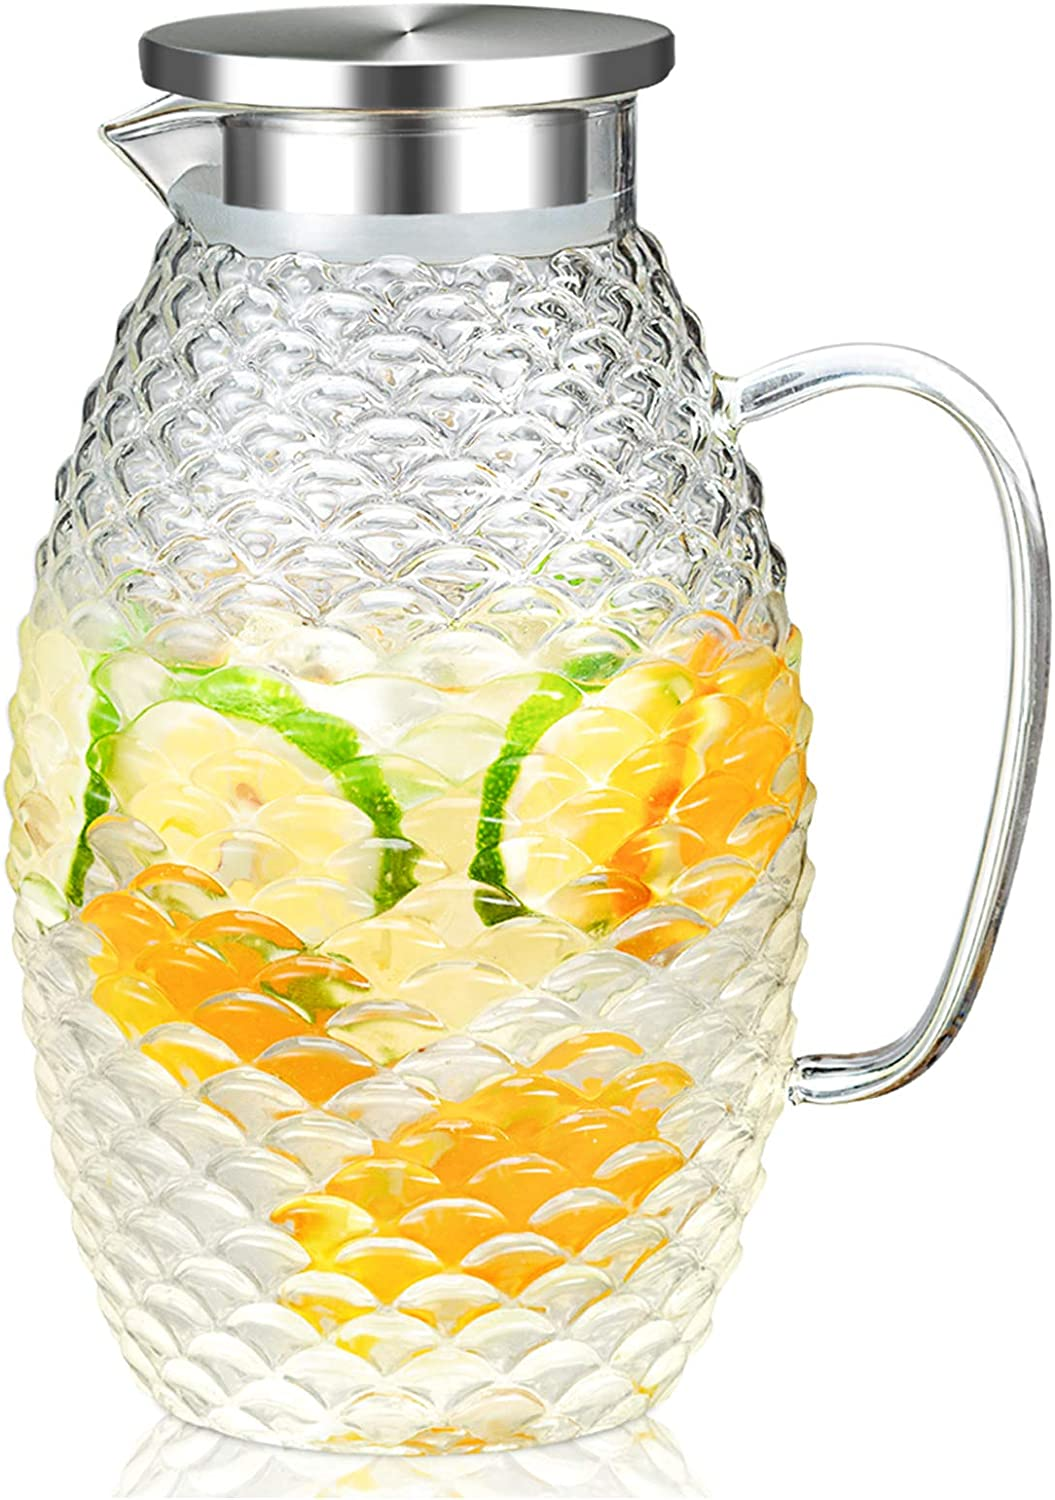 HIHUOS 2 Liters Glass Water Pitcher With Pineapple Shape and Tight Stainless Steel Lid, Carafe With Long Comfortble Handle, Good Beverage Pitcher for Homemade Juice & Iced Tea